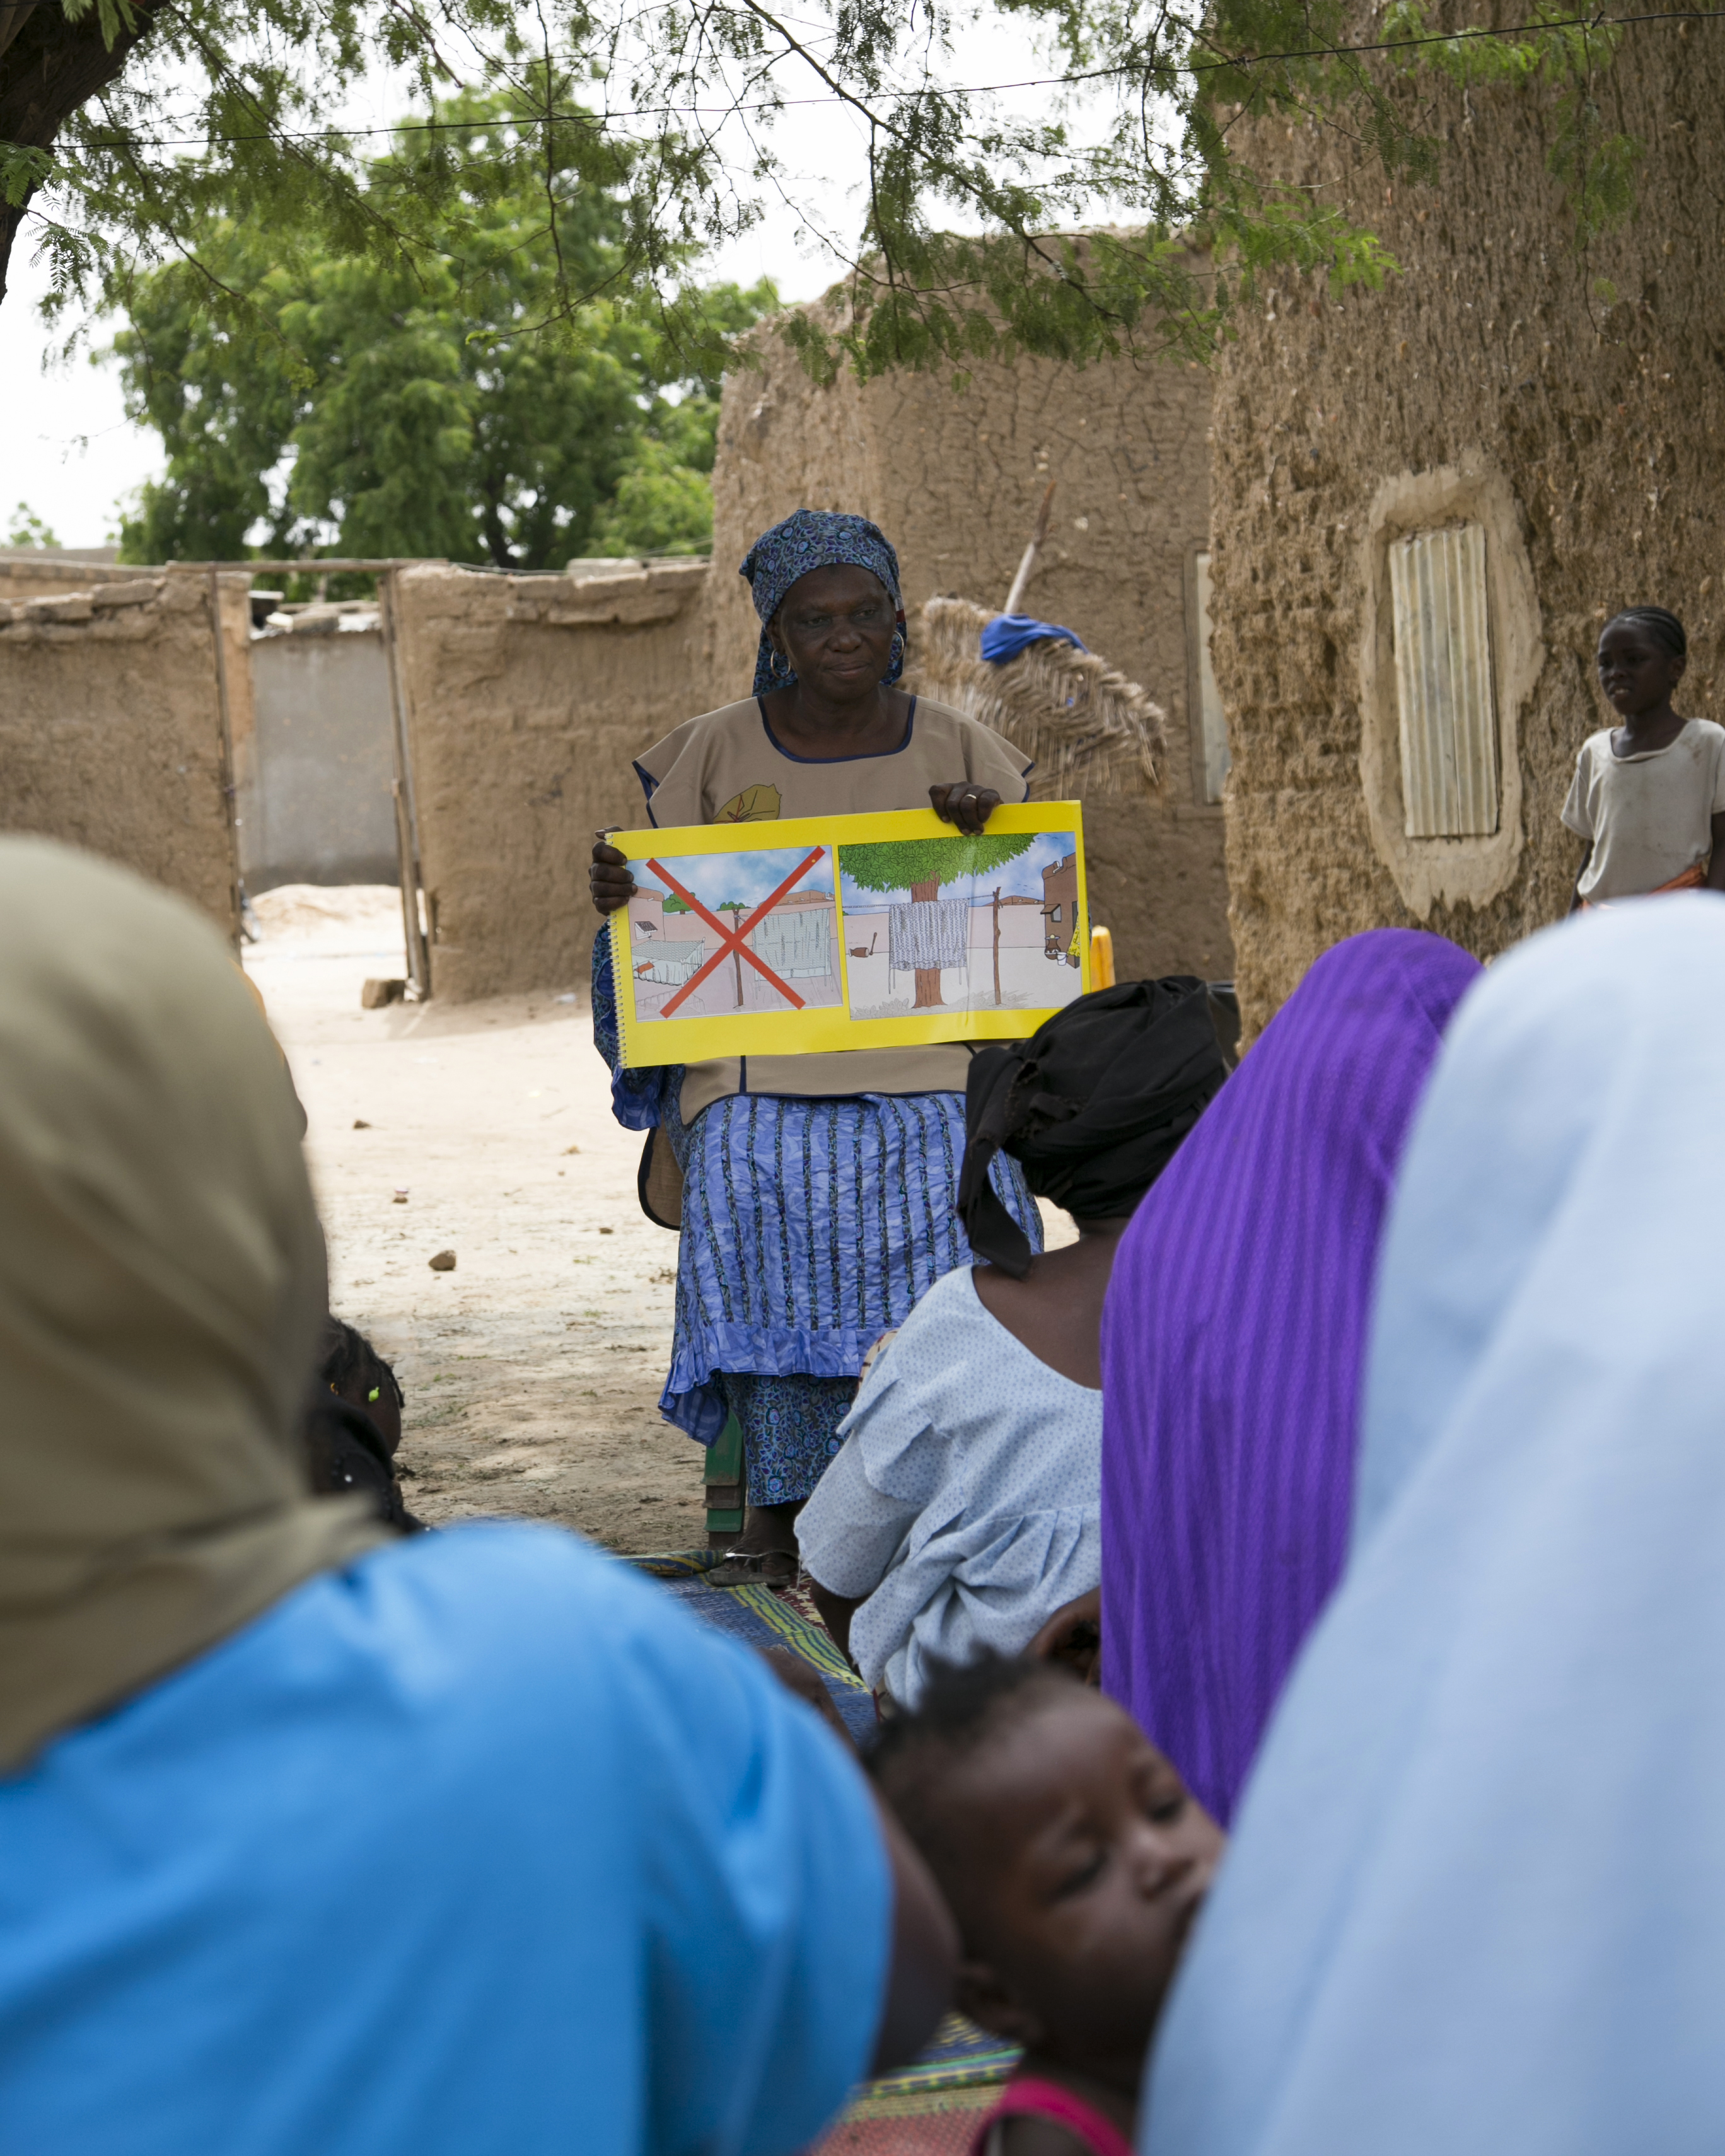 Seydou Fati, a community volunteer in Niger, educates communities about the importance of malaria prevention, including the use of insecticide-treated mosquito nets. Photo by Michael Stulman/CRS